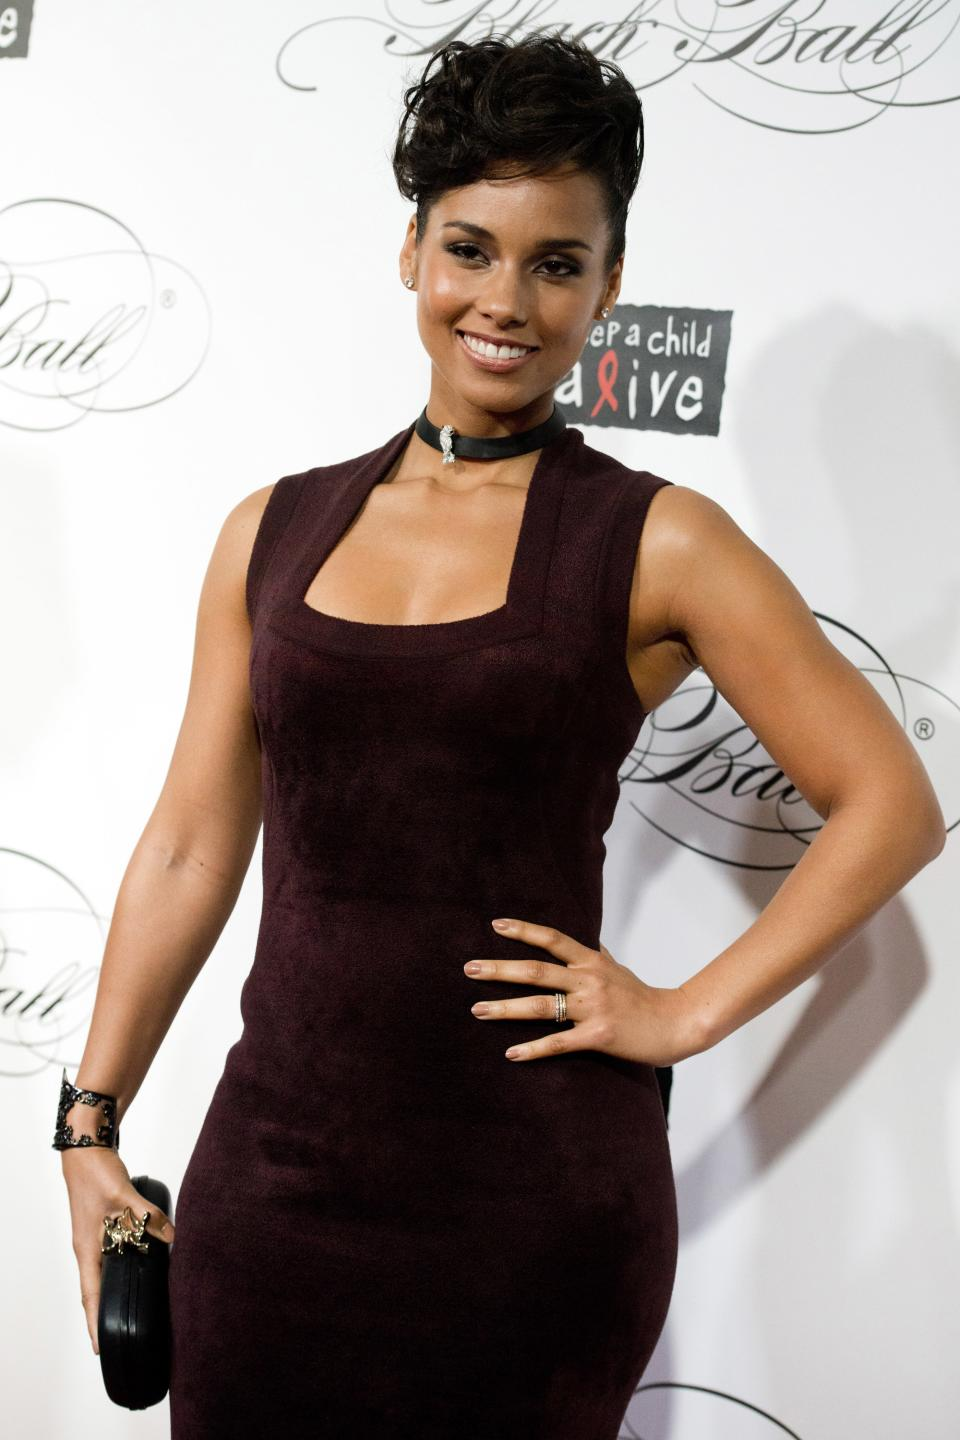 Alicia Keys attends the Keep a Child Alive's ninth annual Black Ball on Thursday, Dec. 6, 2012 in New York. (Photo by Charles Sykes/Invision/AP)